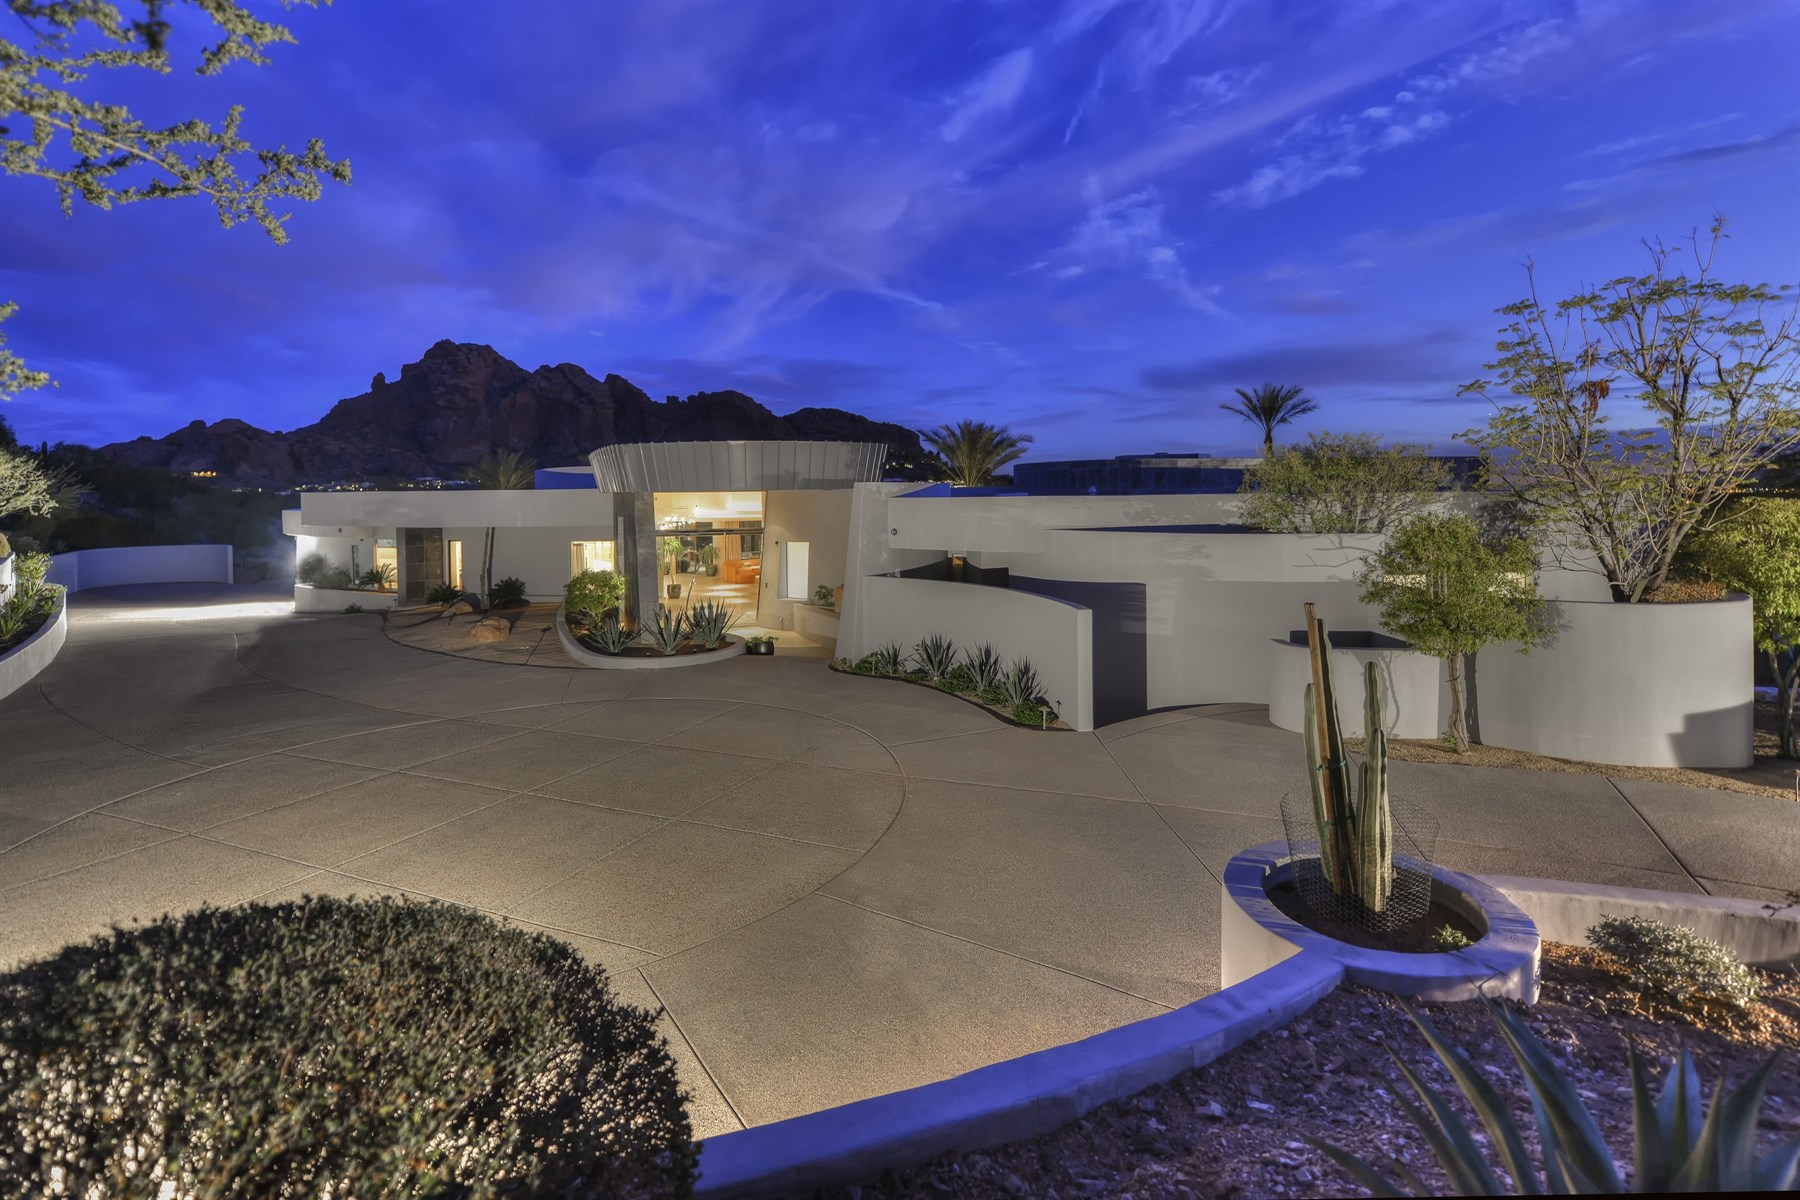 Moradia para Venda às Breathtaking Custom Contemporary Includes Holistic Views Of The Praying Monk 6021 N 44th Street Paradise Valley, Arizona, 85253 Estados Unidos